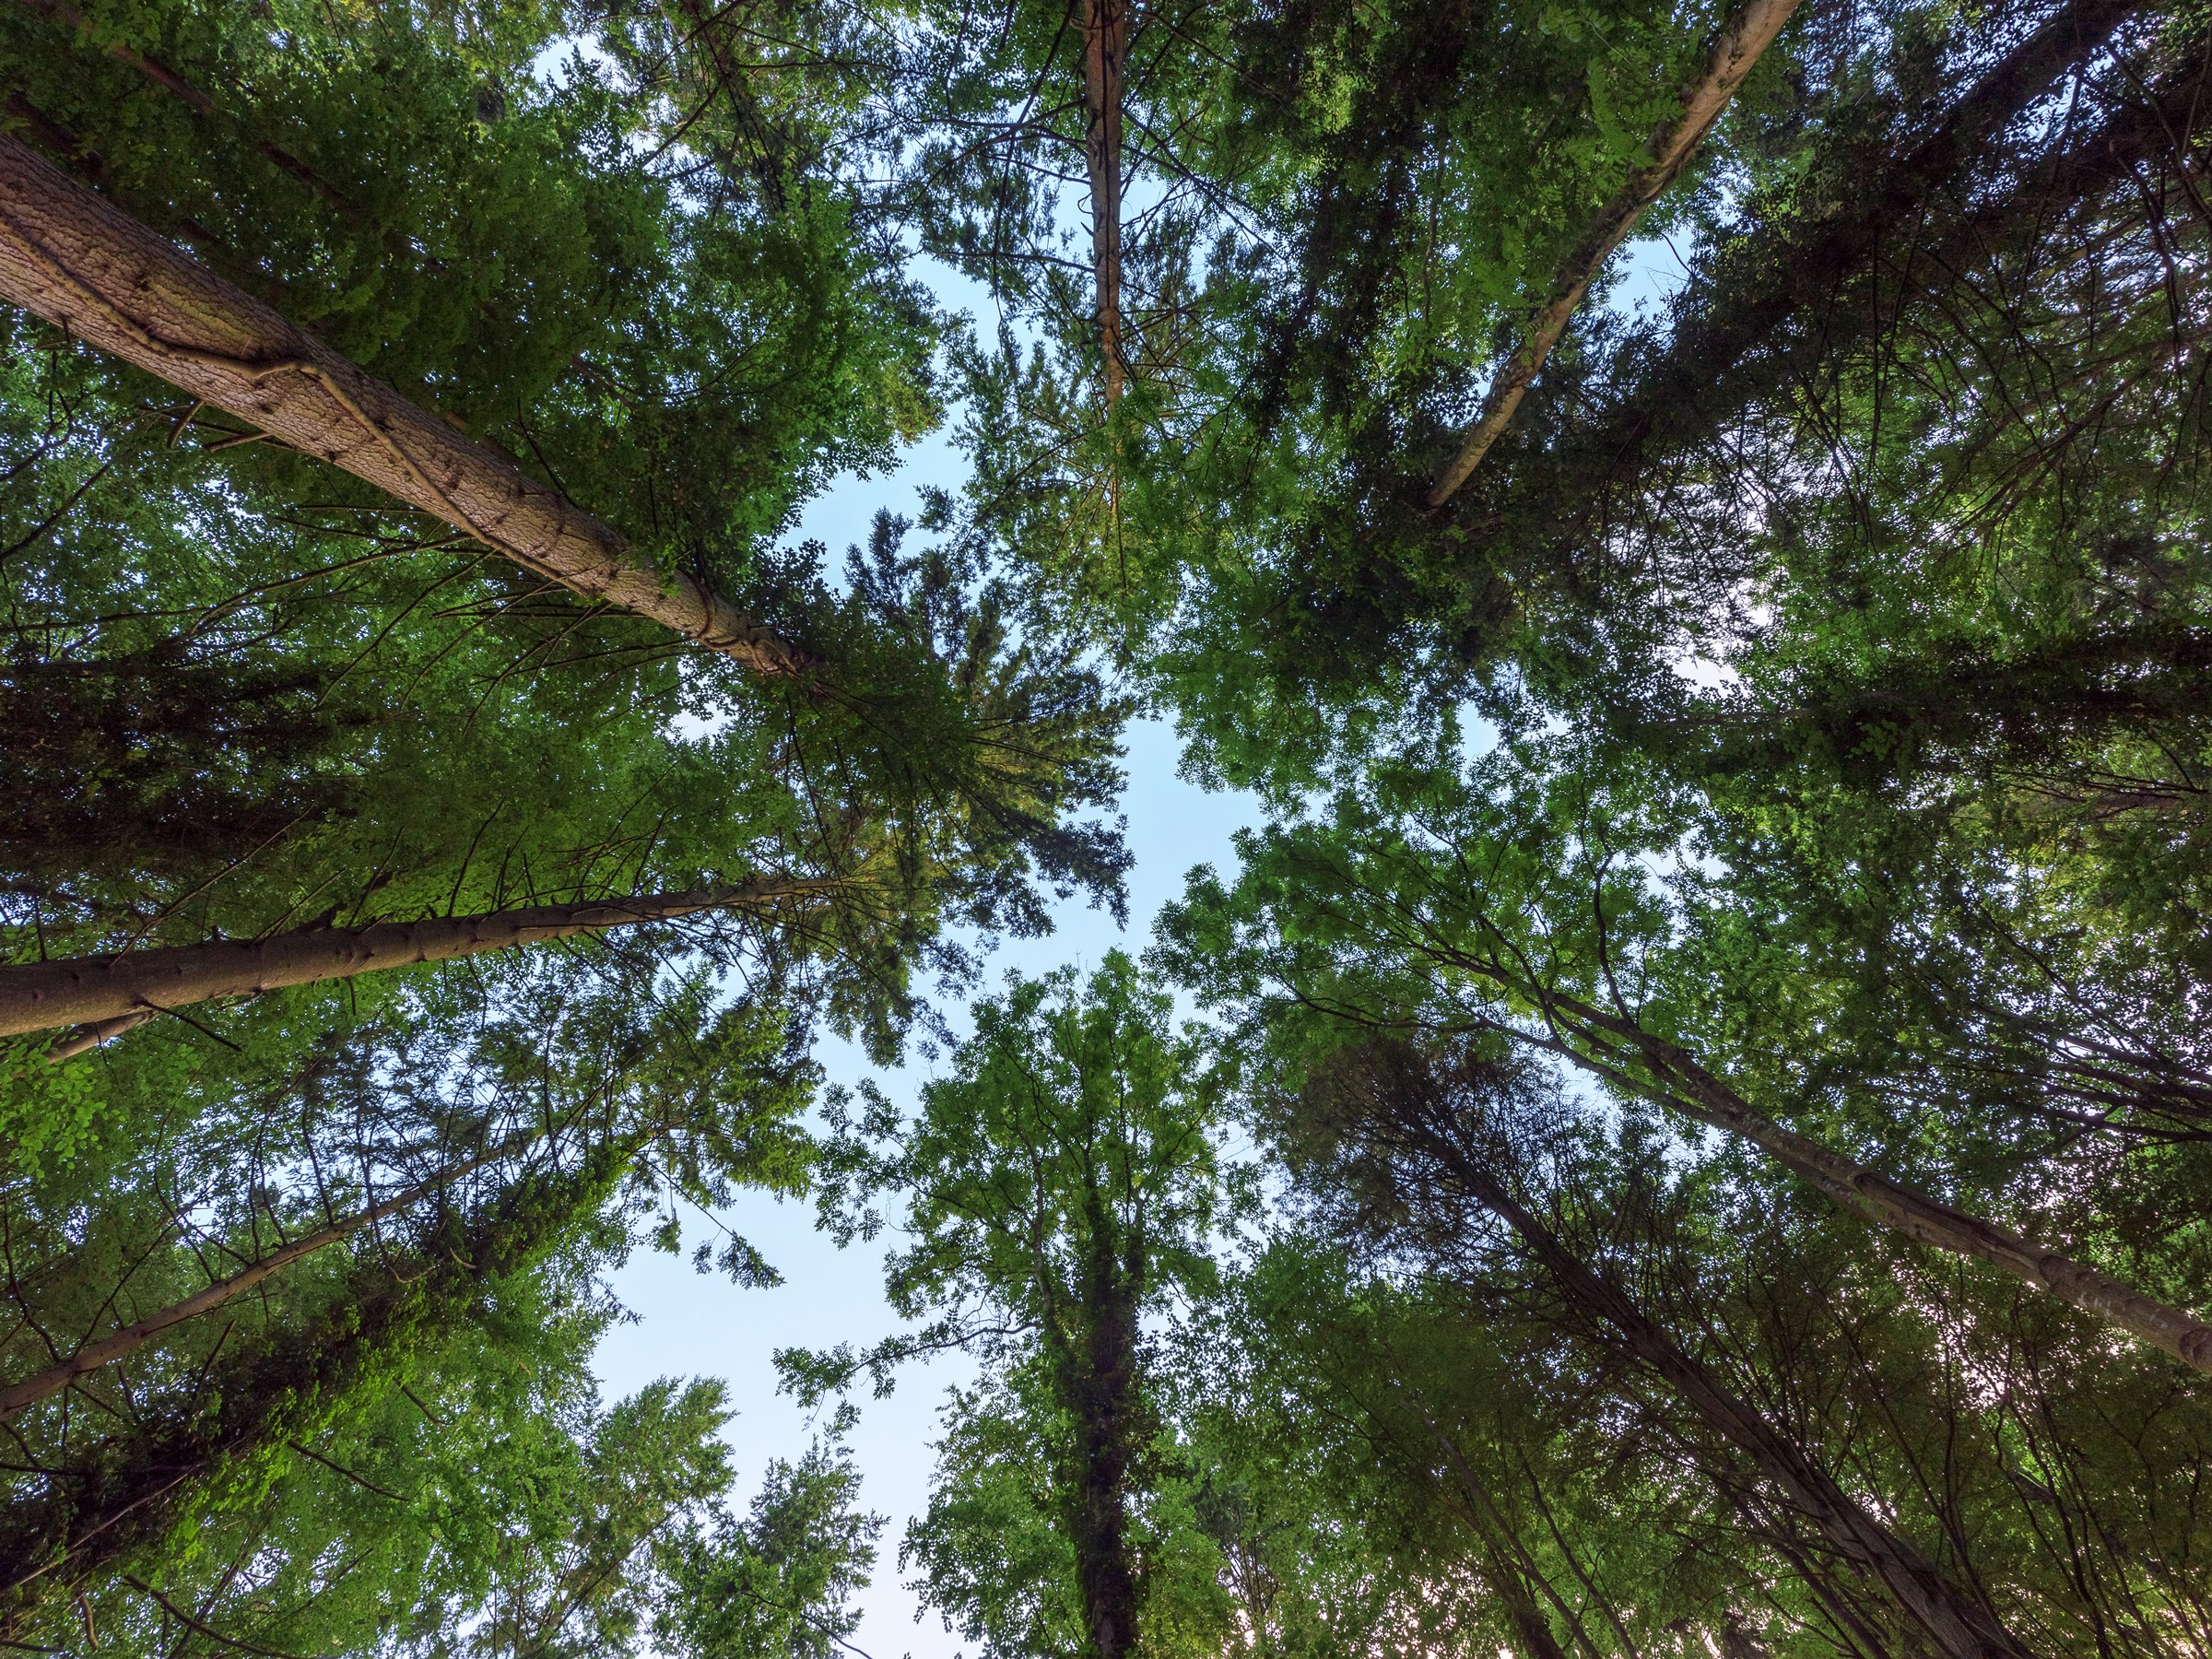 8 Amazing Facts about Forests - Forestrypedia